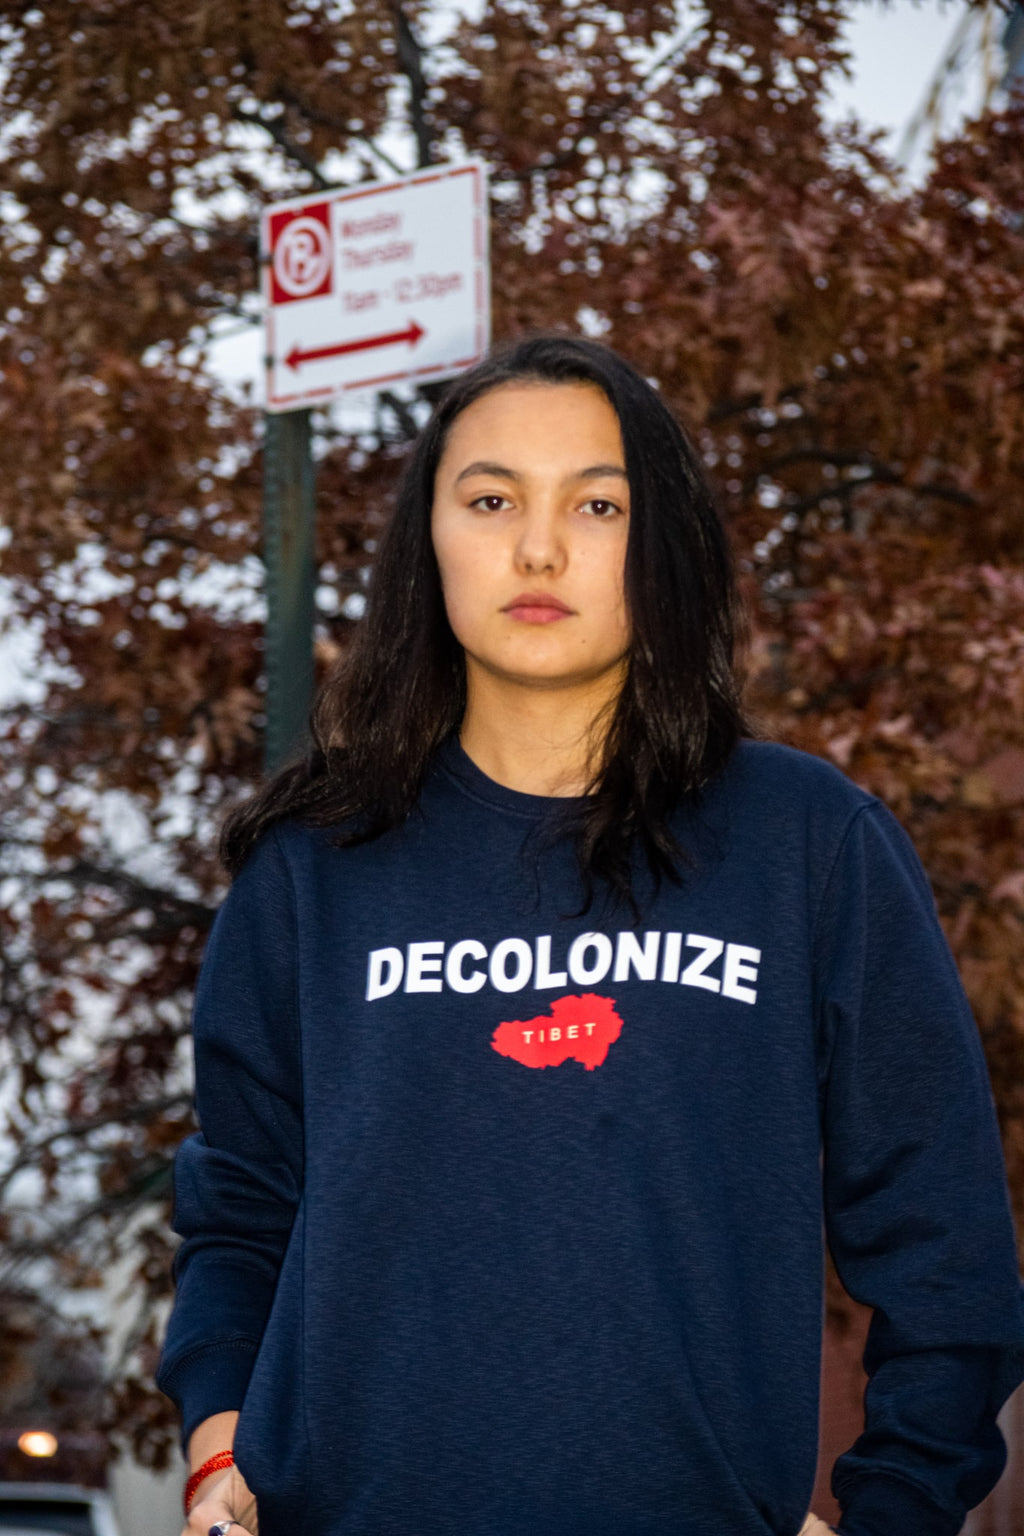 DECOLONIZE Crewneck Sweater